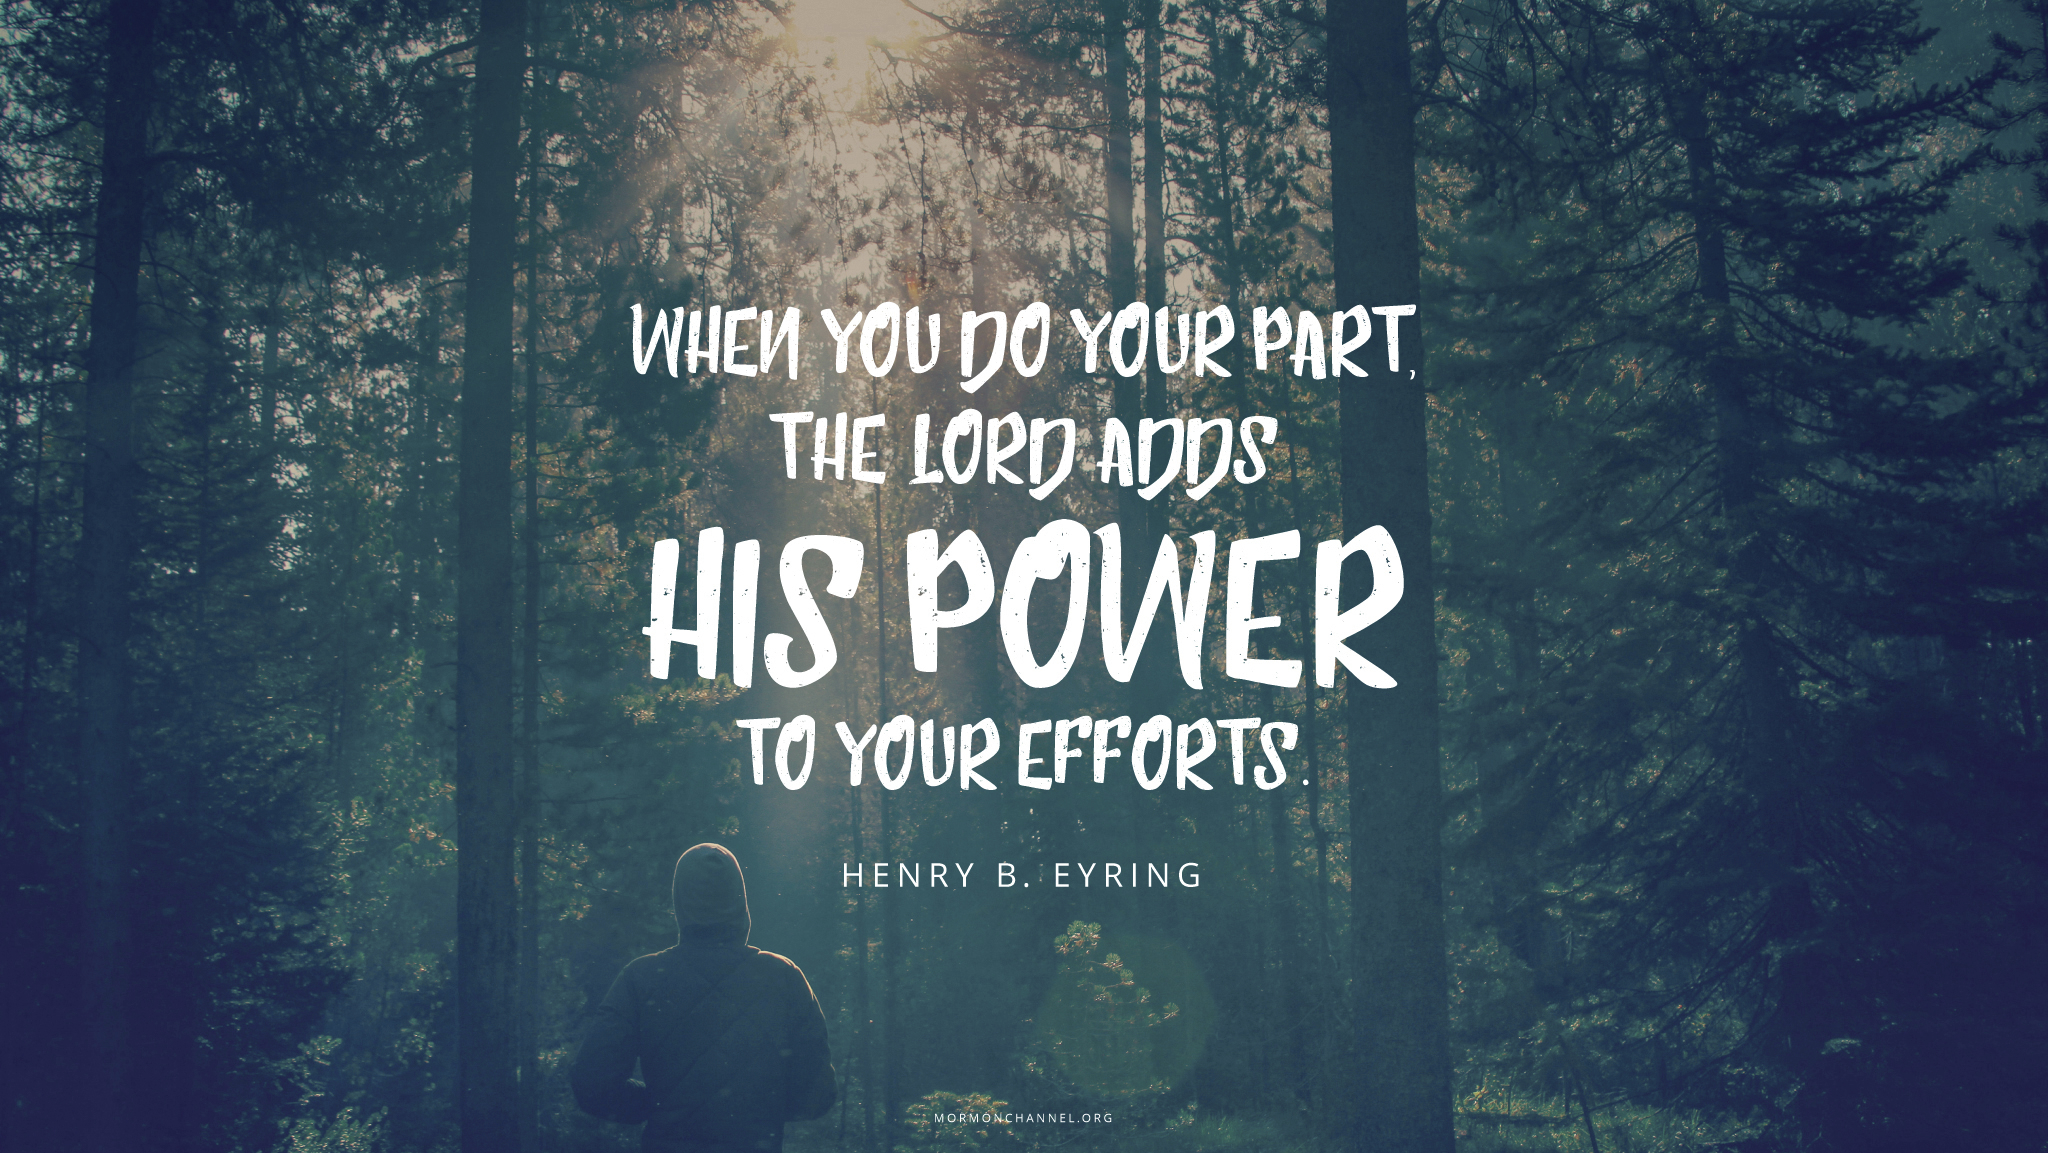 """""""When you do your part, the Lord adds His power to your efforts.""""—President Henry B. Eyring, """"You Are Not Alone in the Work"""""""